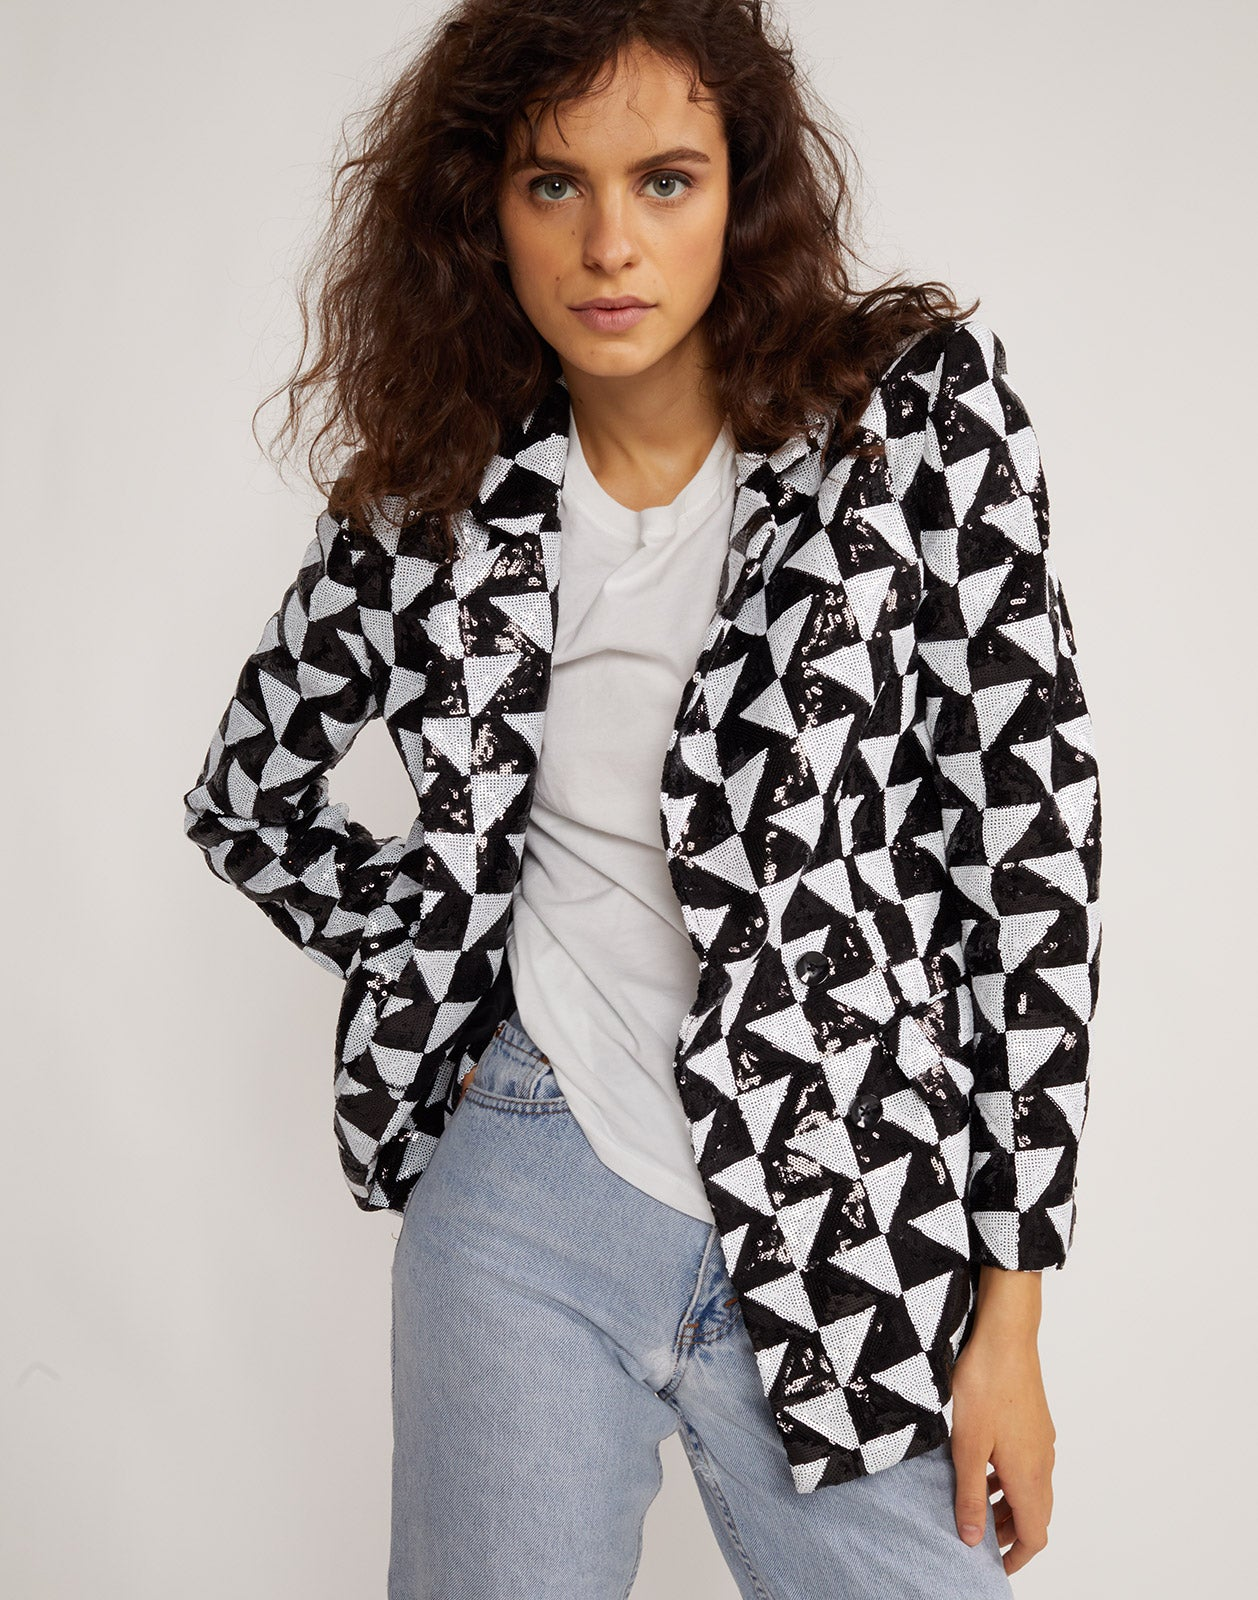 Front view of the Illusion geometric sequin blazer.